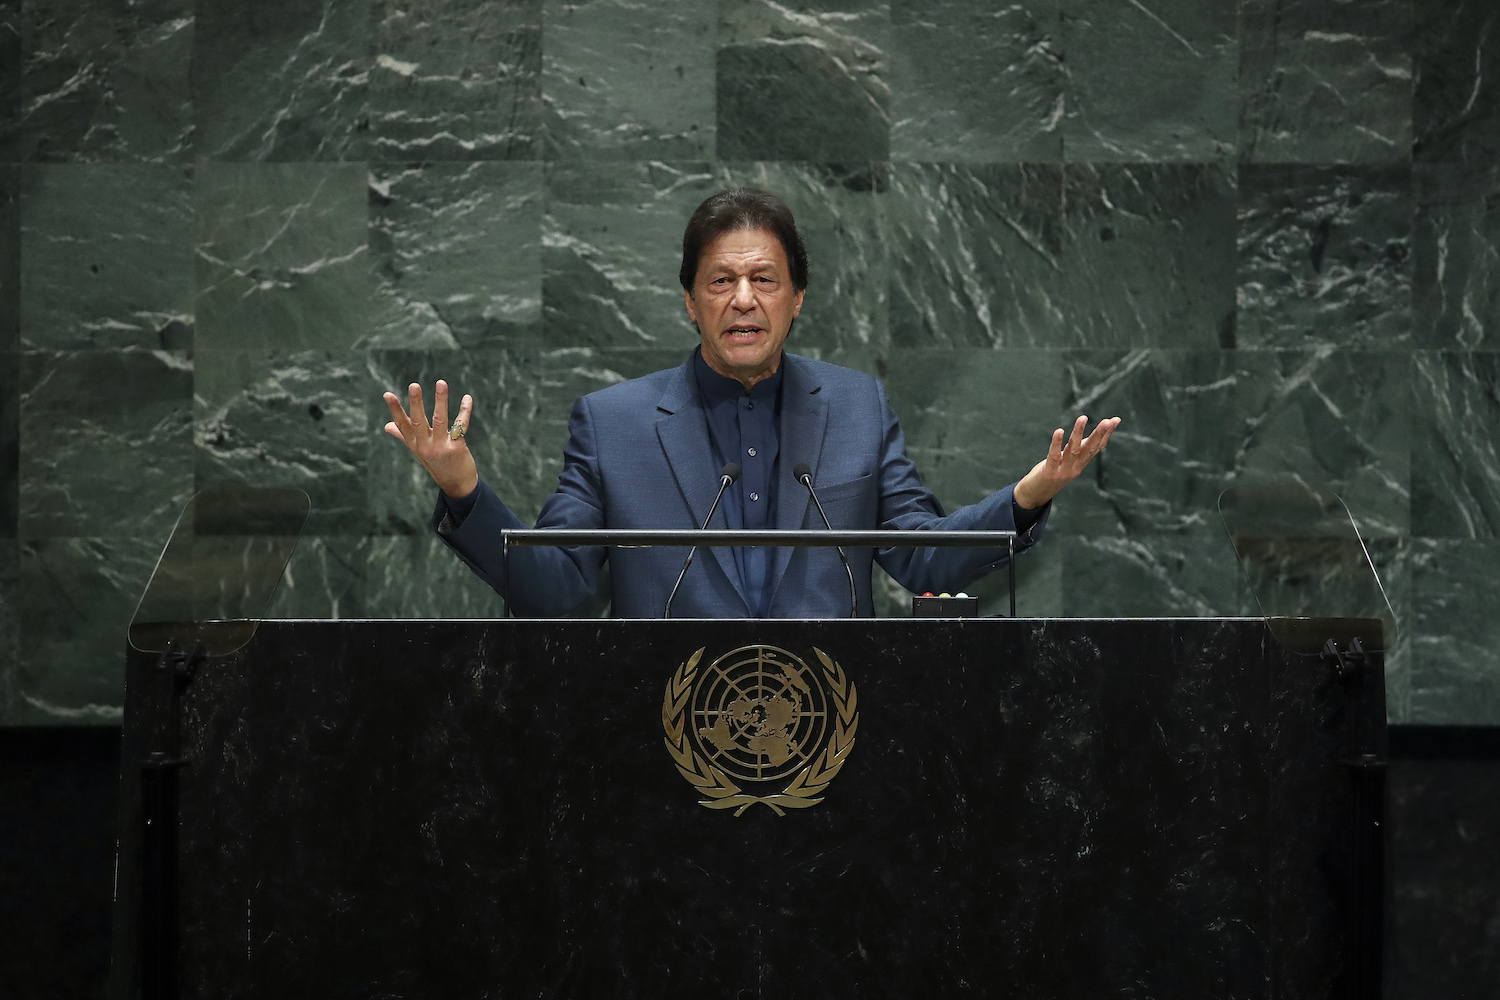 Pakistani Prime Minister Imran Khan addresses the United Nations General Assembly in New York on Sept. 27, 2019.